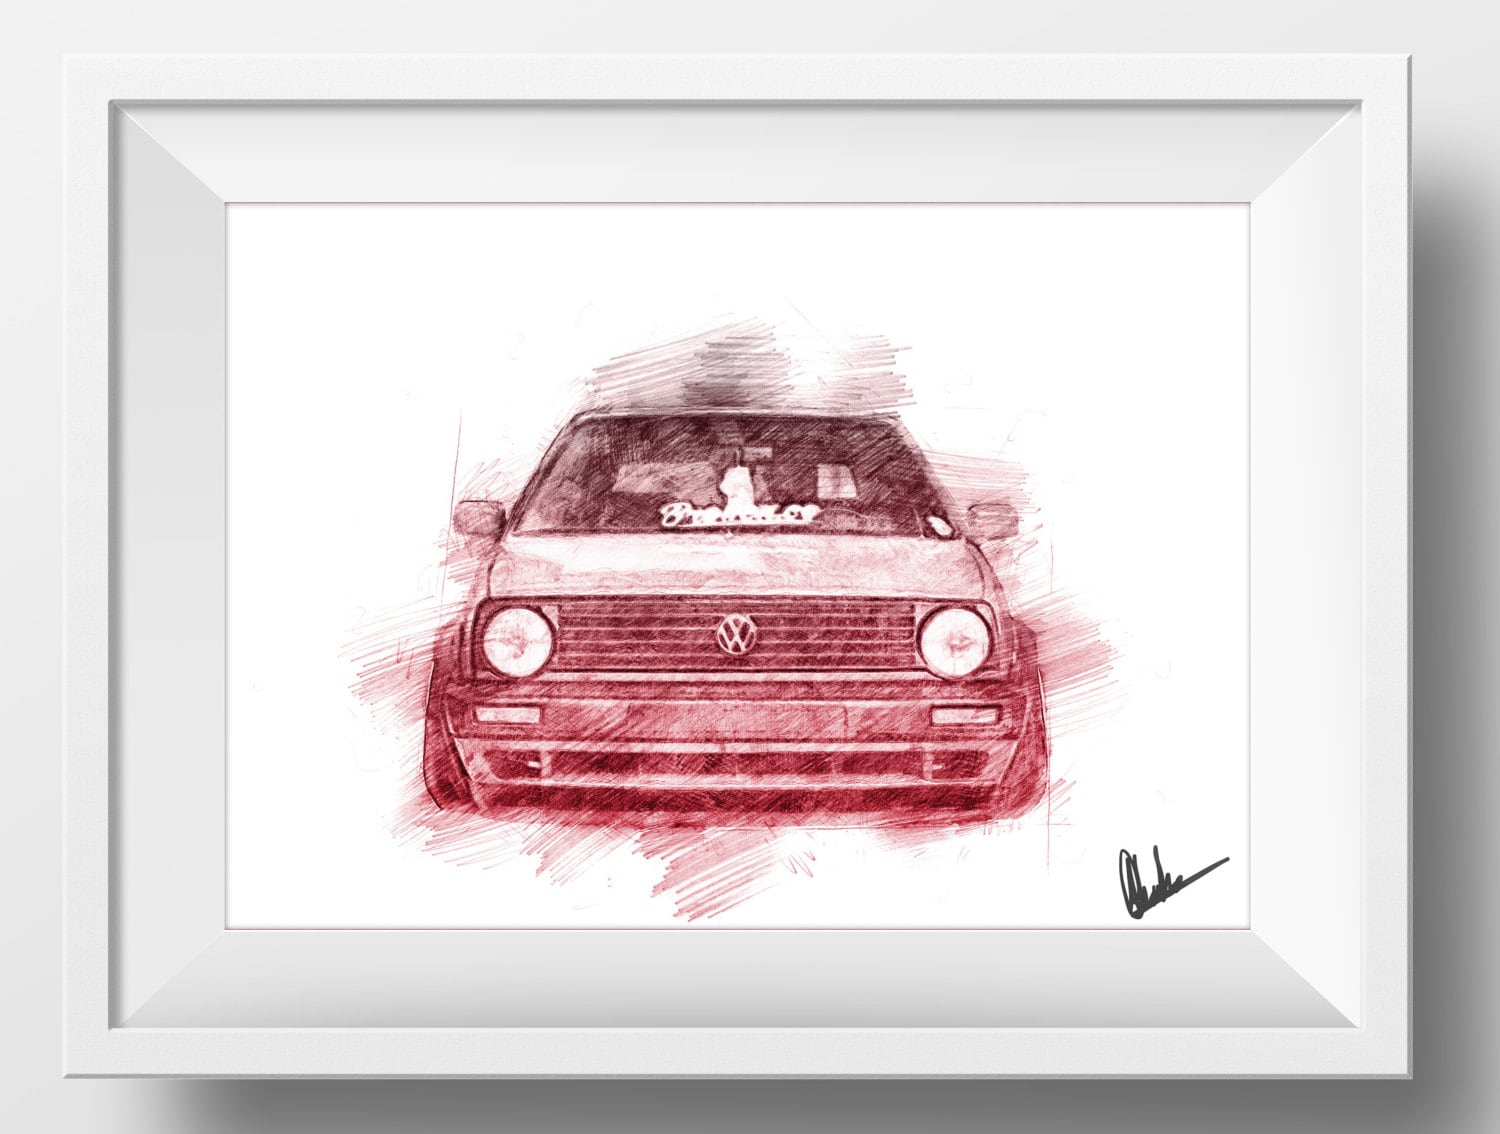 VW Volkswagen Golf MK2 GTI Sketch Drawing Poster A4 Print for